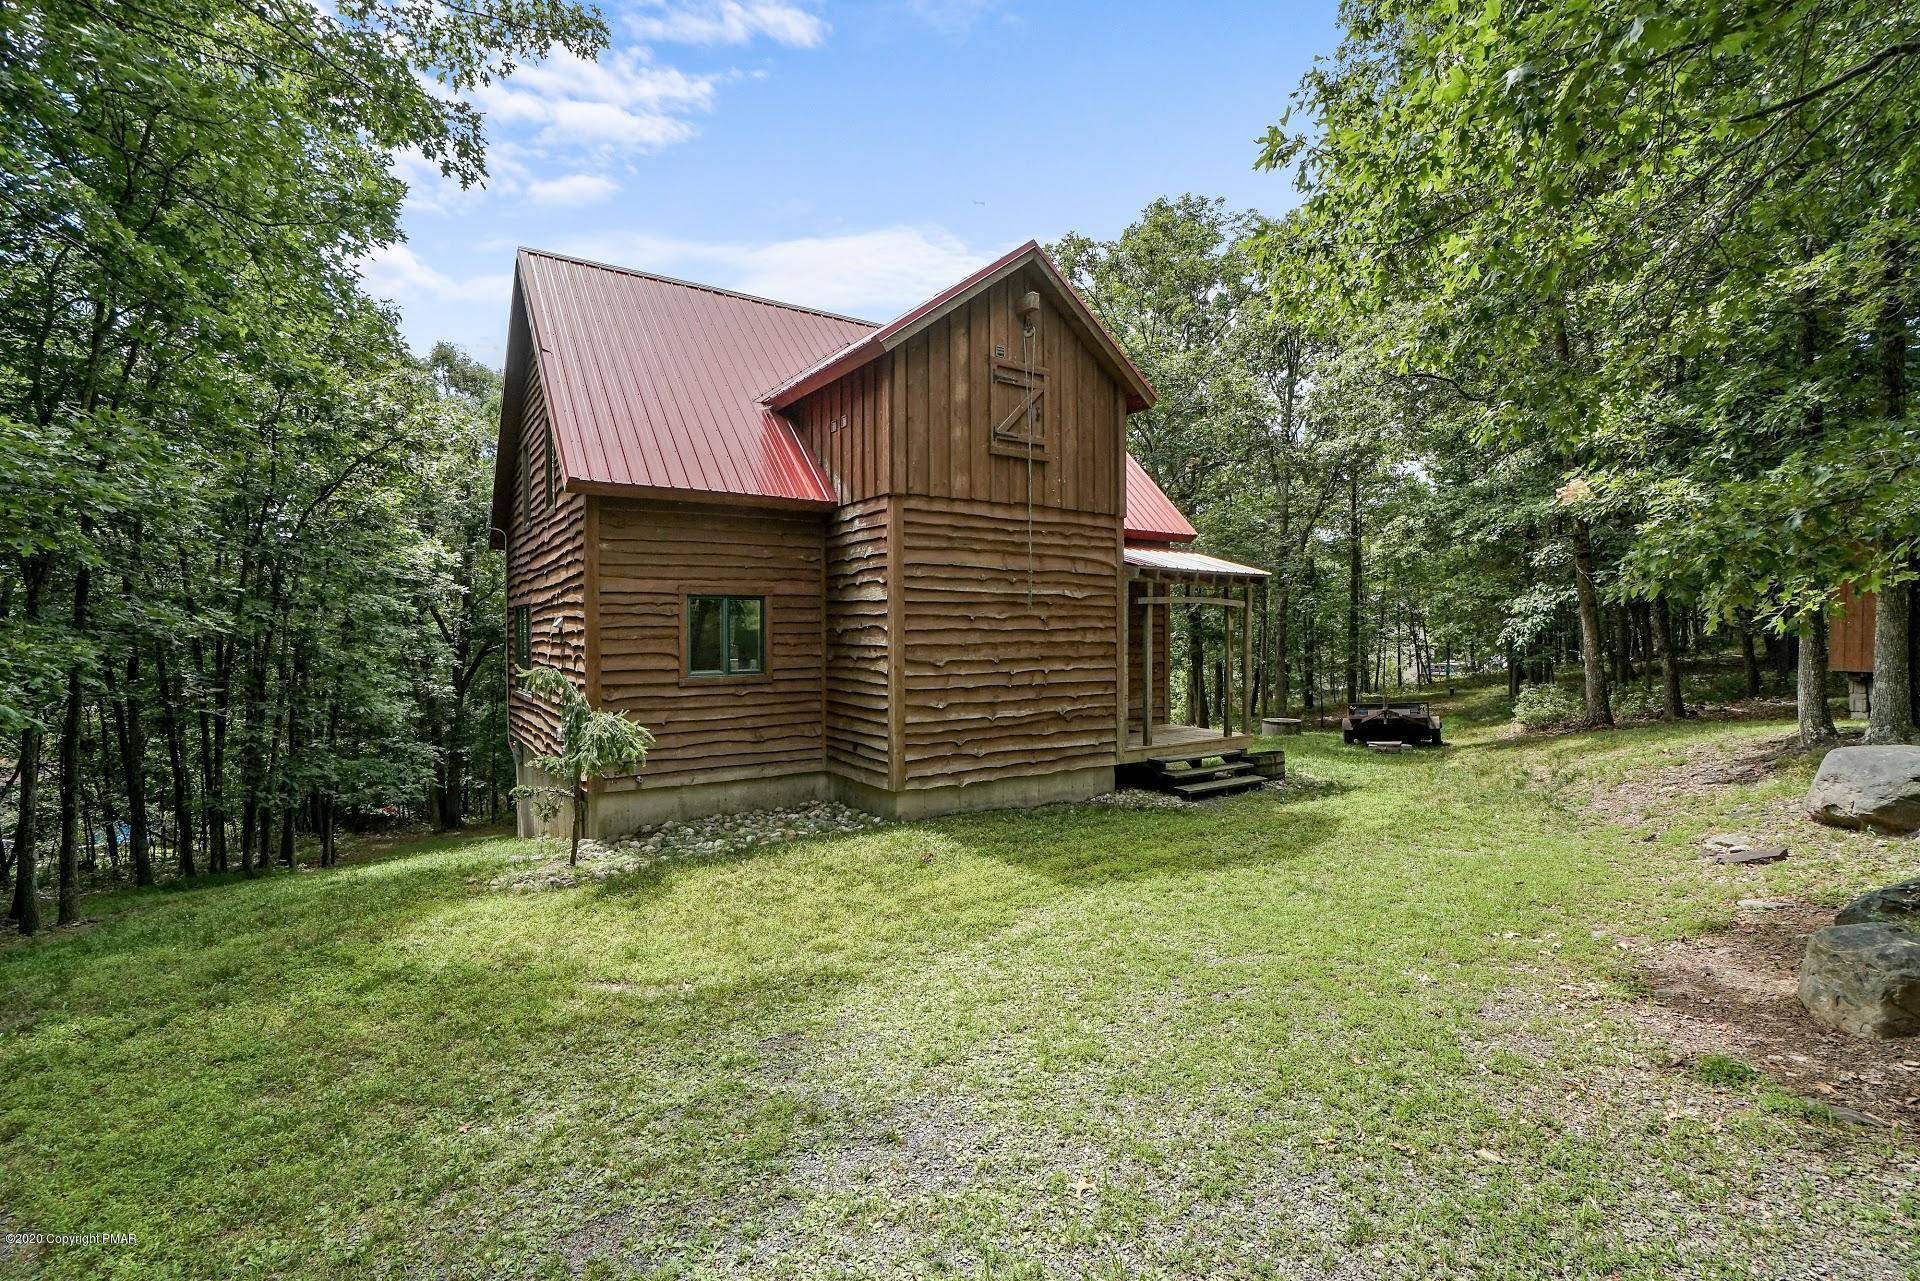 230 Timber Hill Rd, Henryville, PA 18332